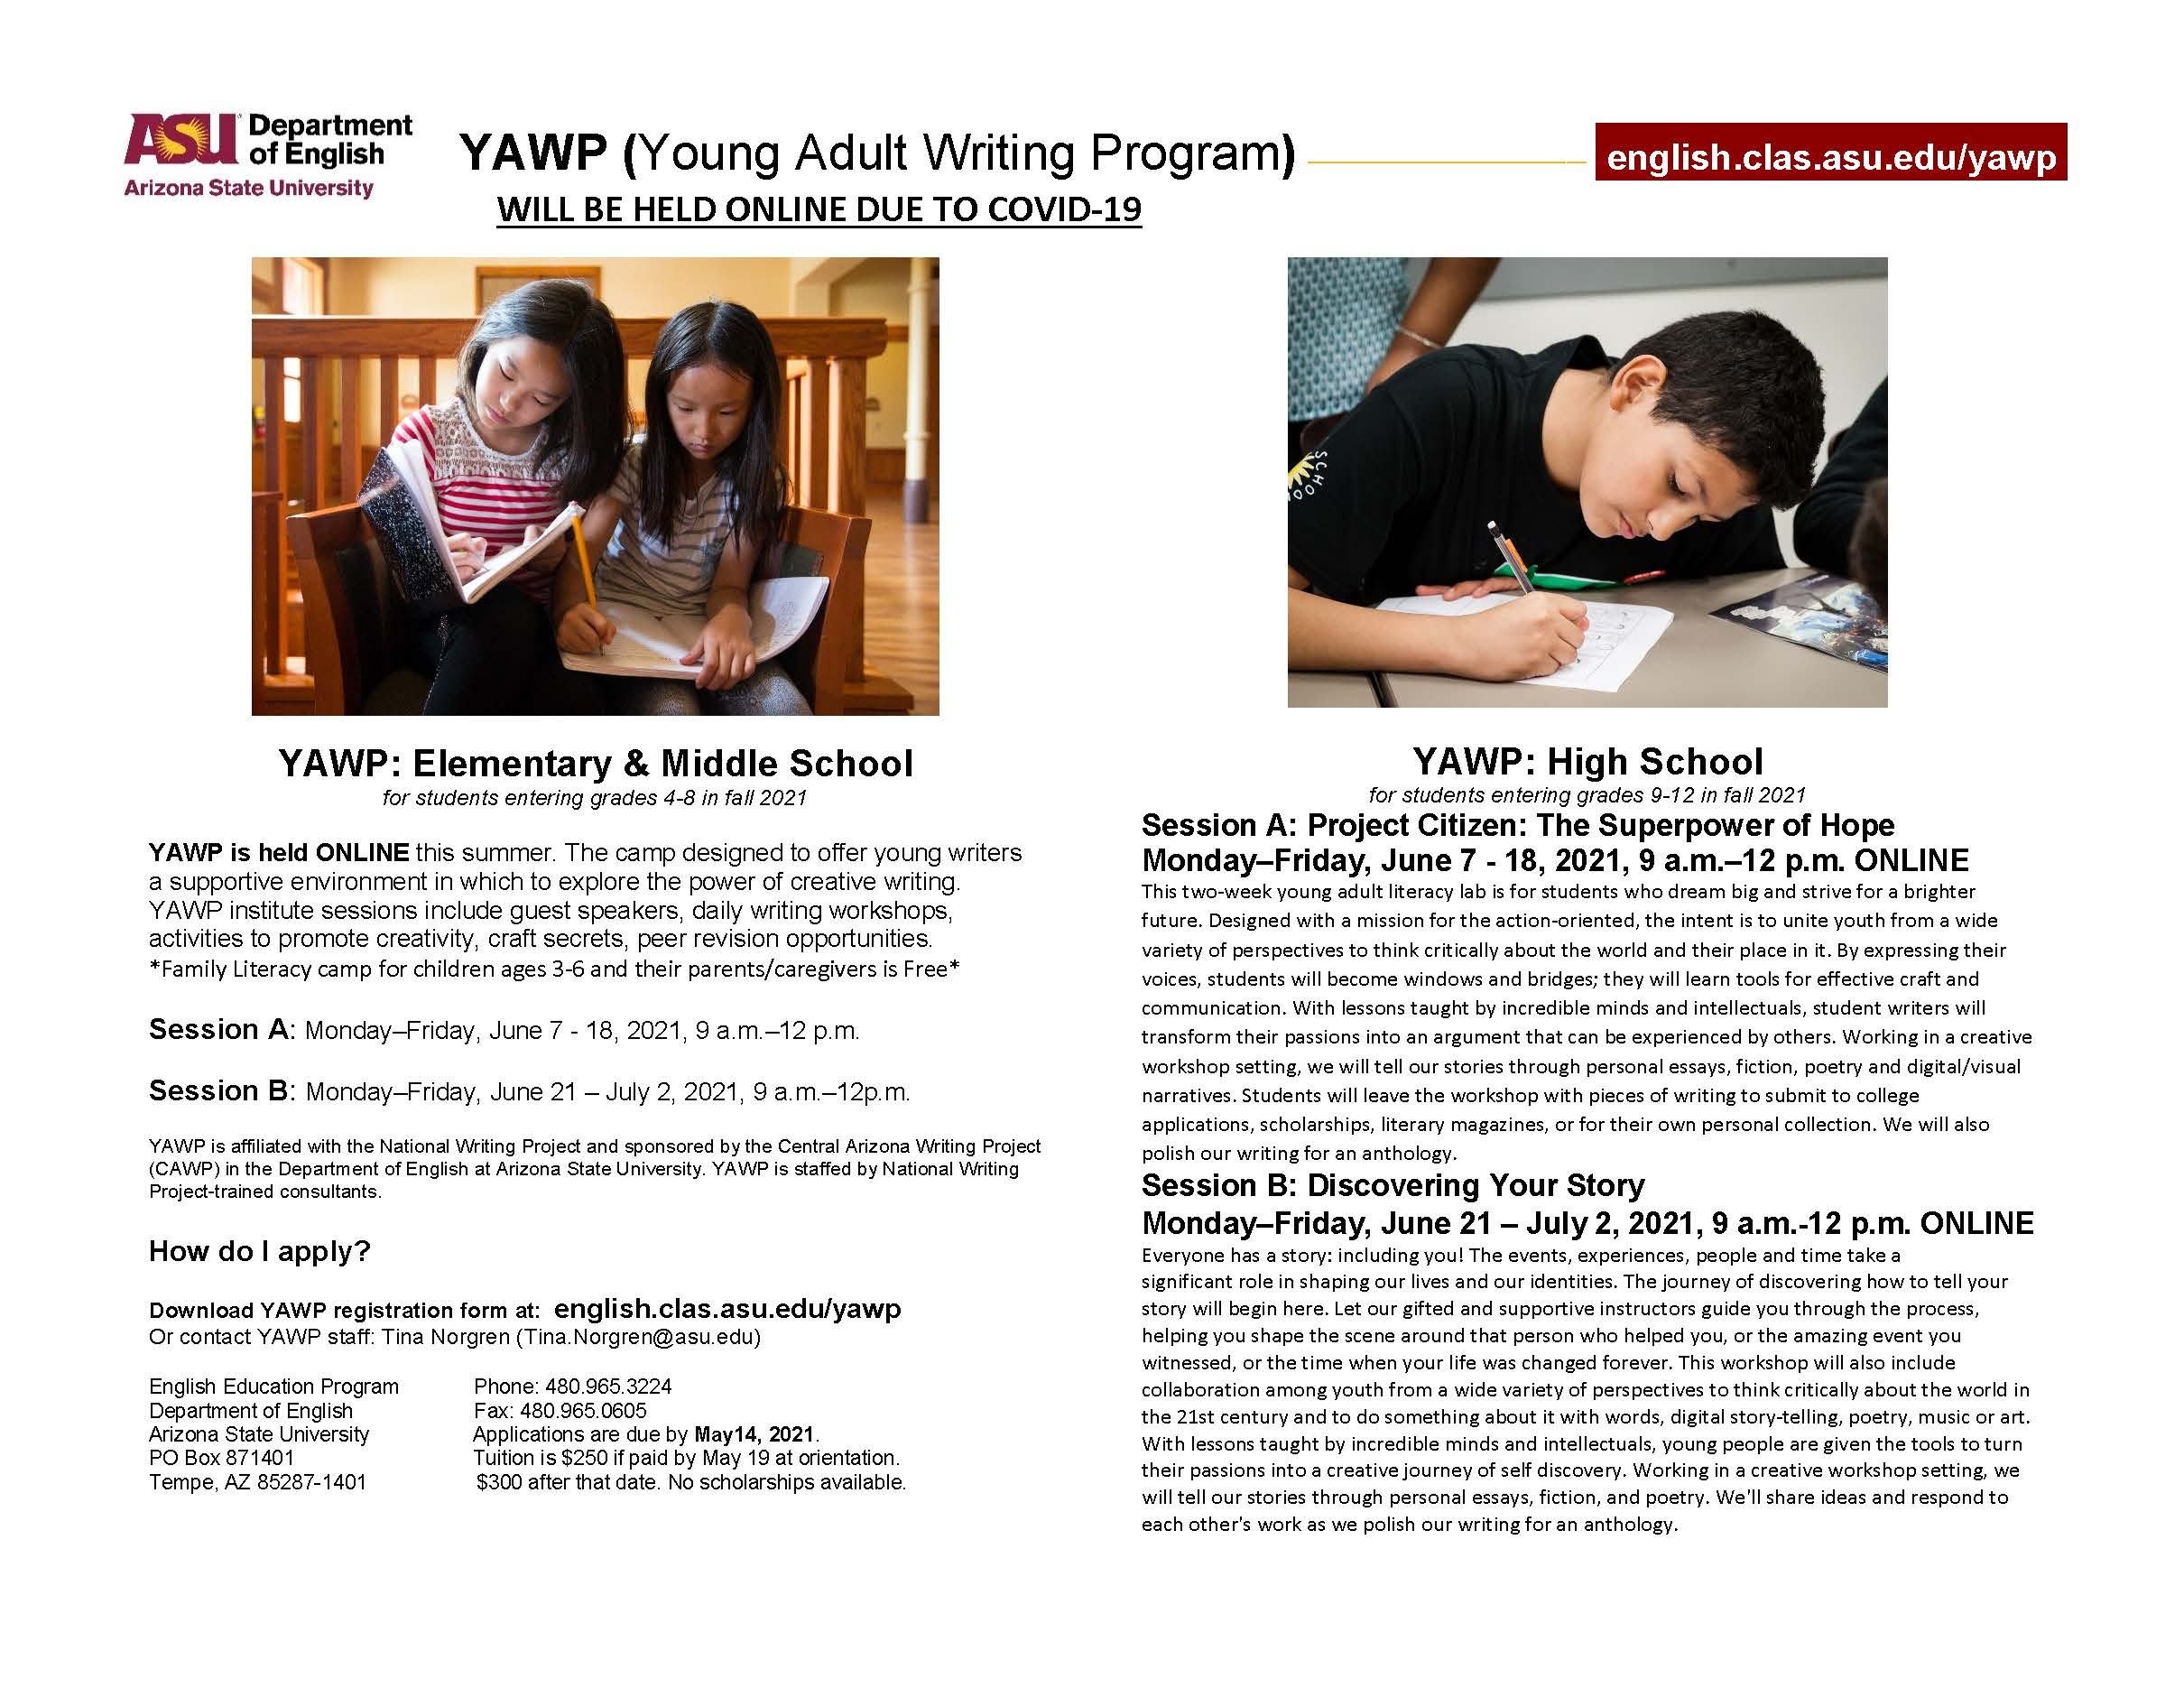 Flyer image advertising YAWP 2021 sessions